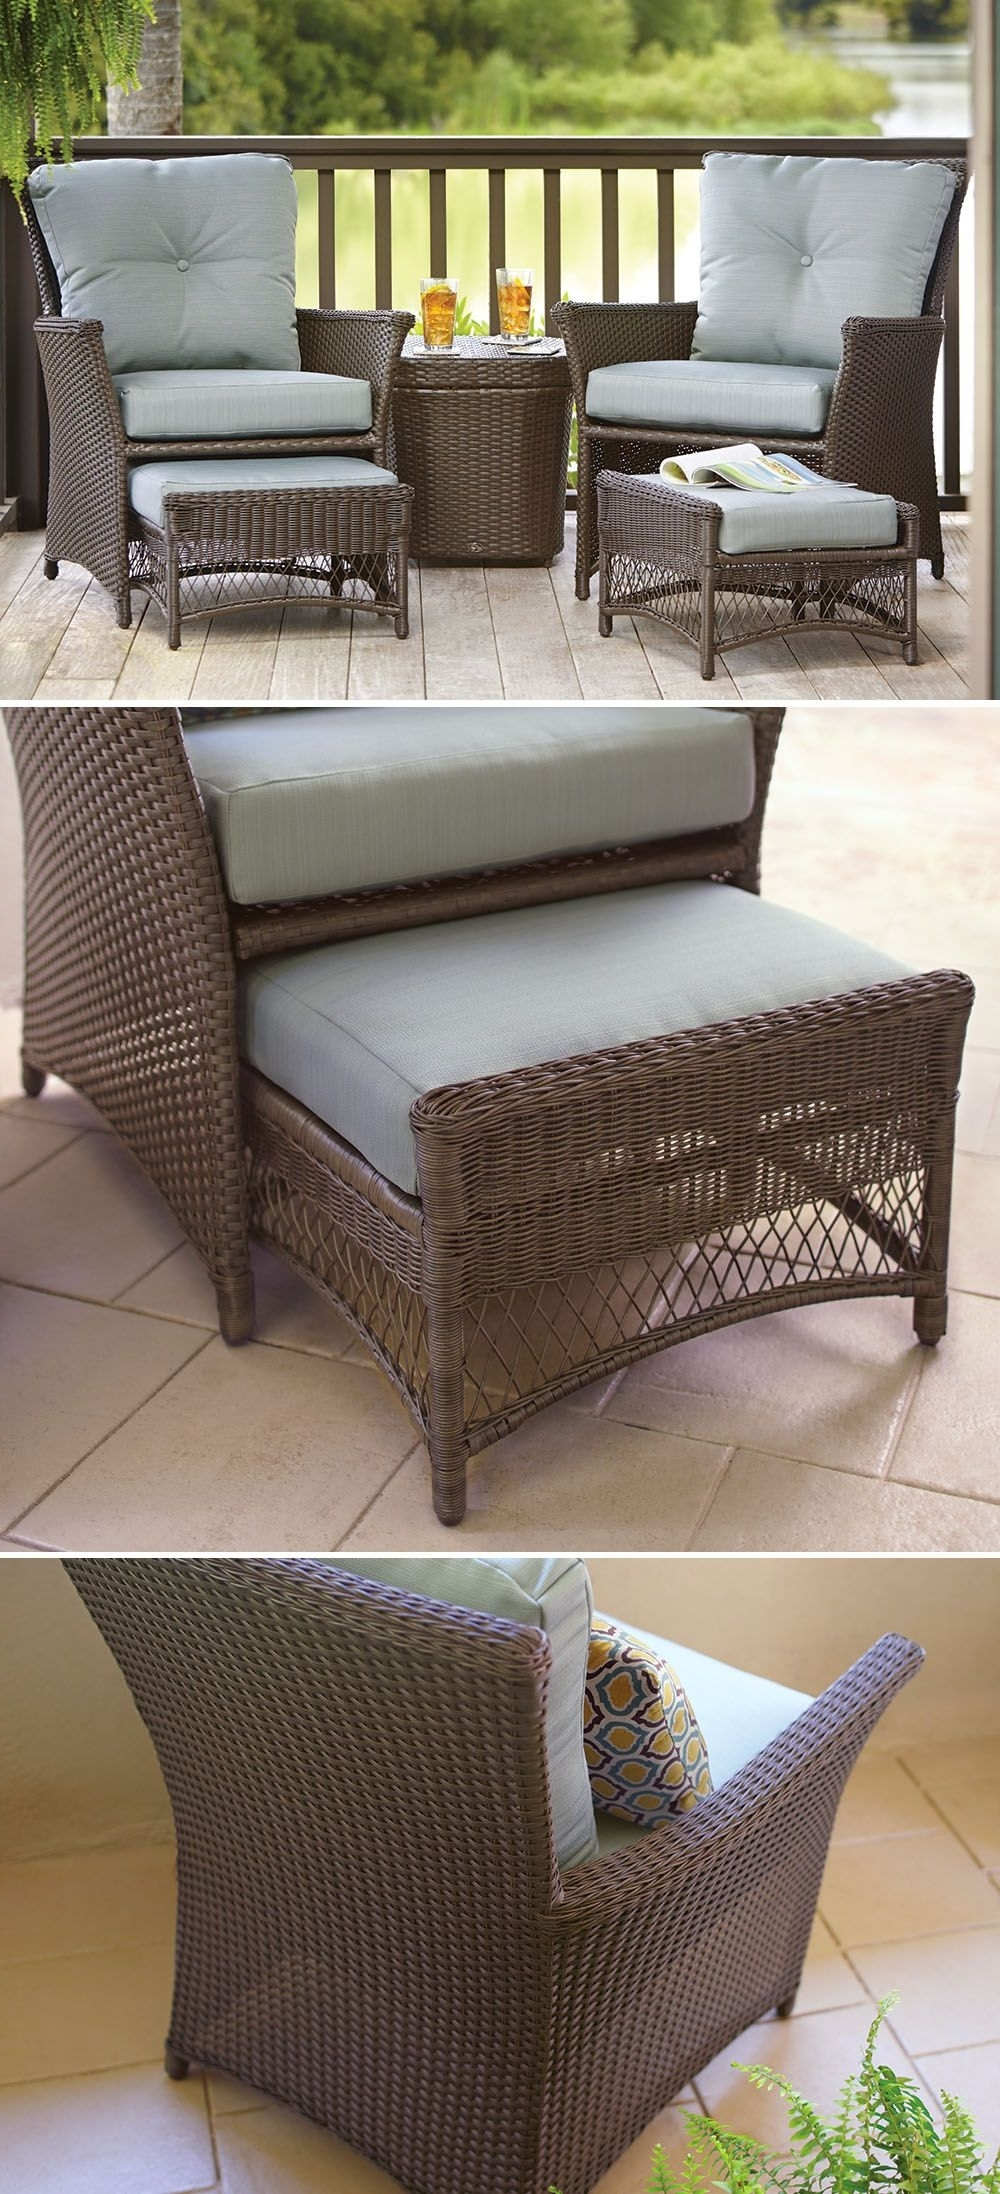 Recent This Affordable Patio Set Is Just The Right Size For Your Small In Patio Conversation Sets With Ottomans (View 16 of 20)